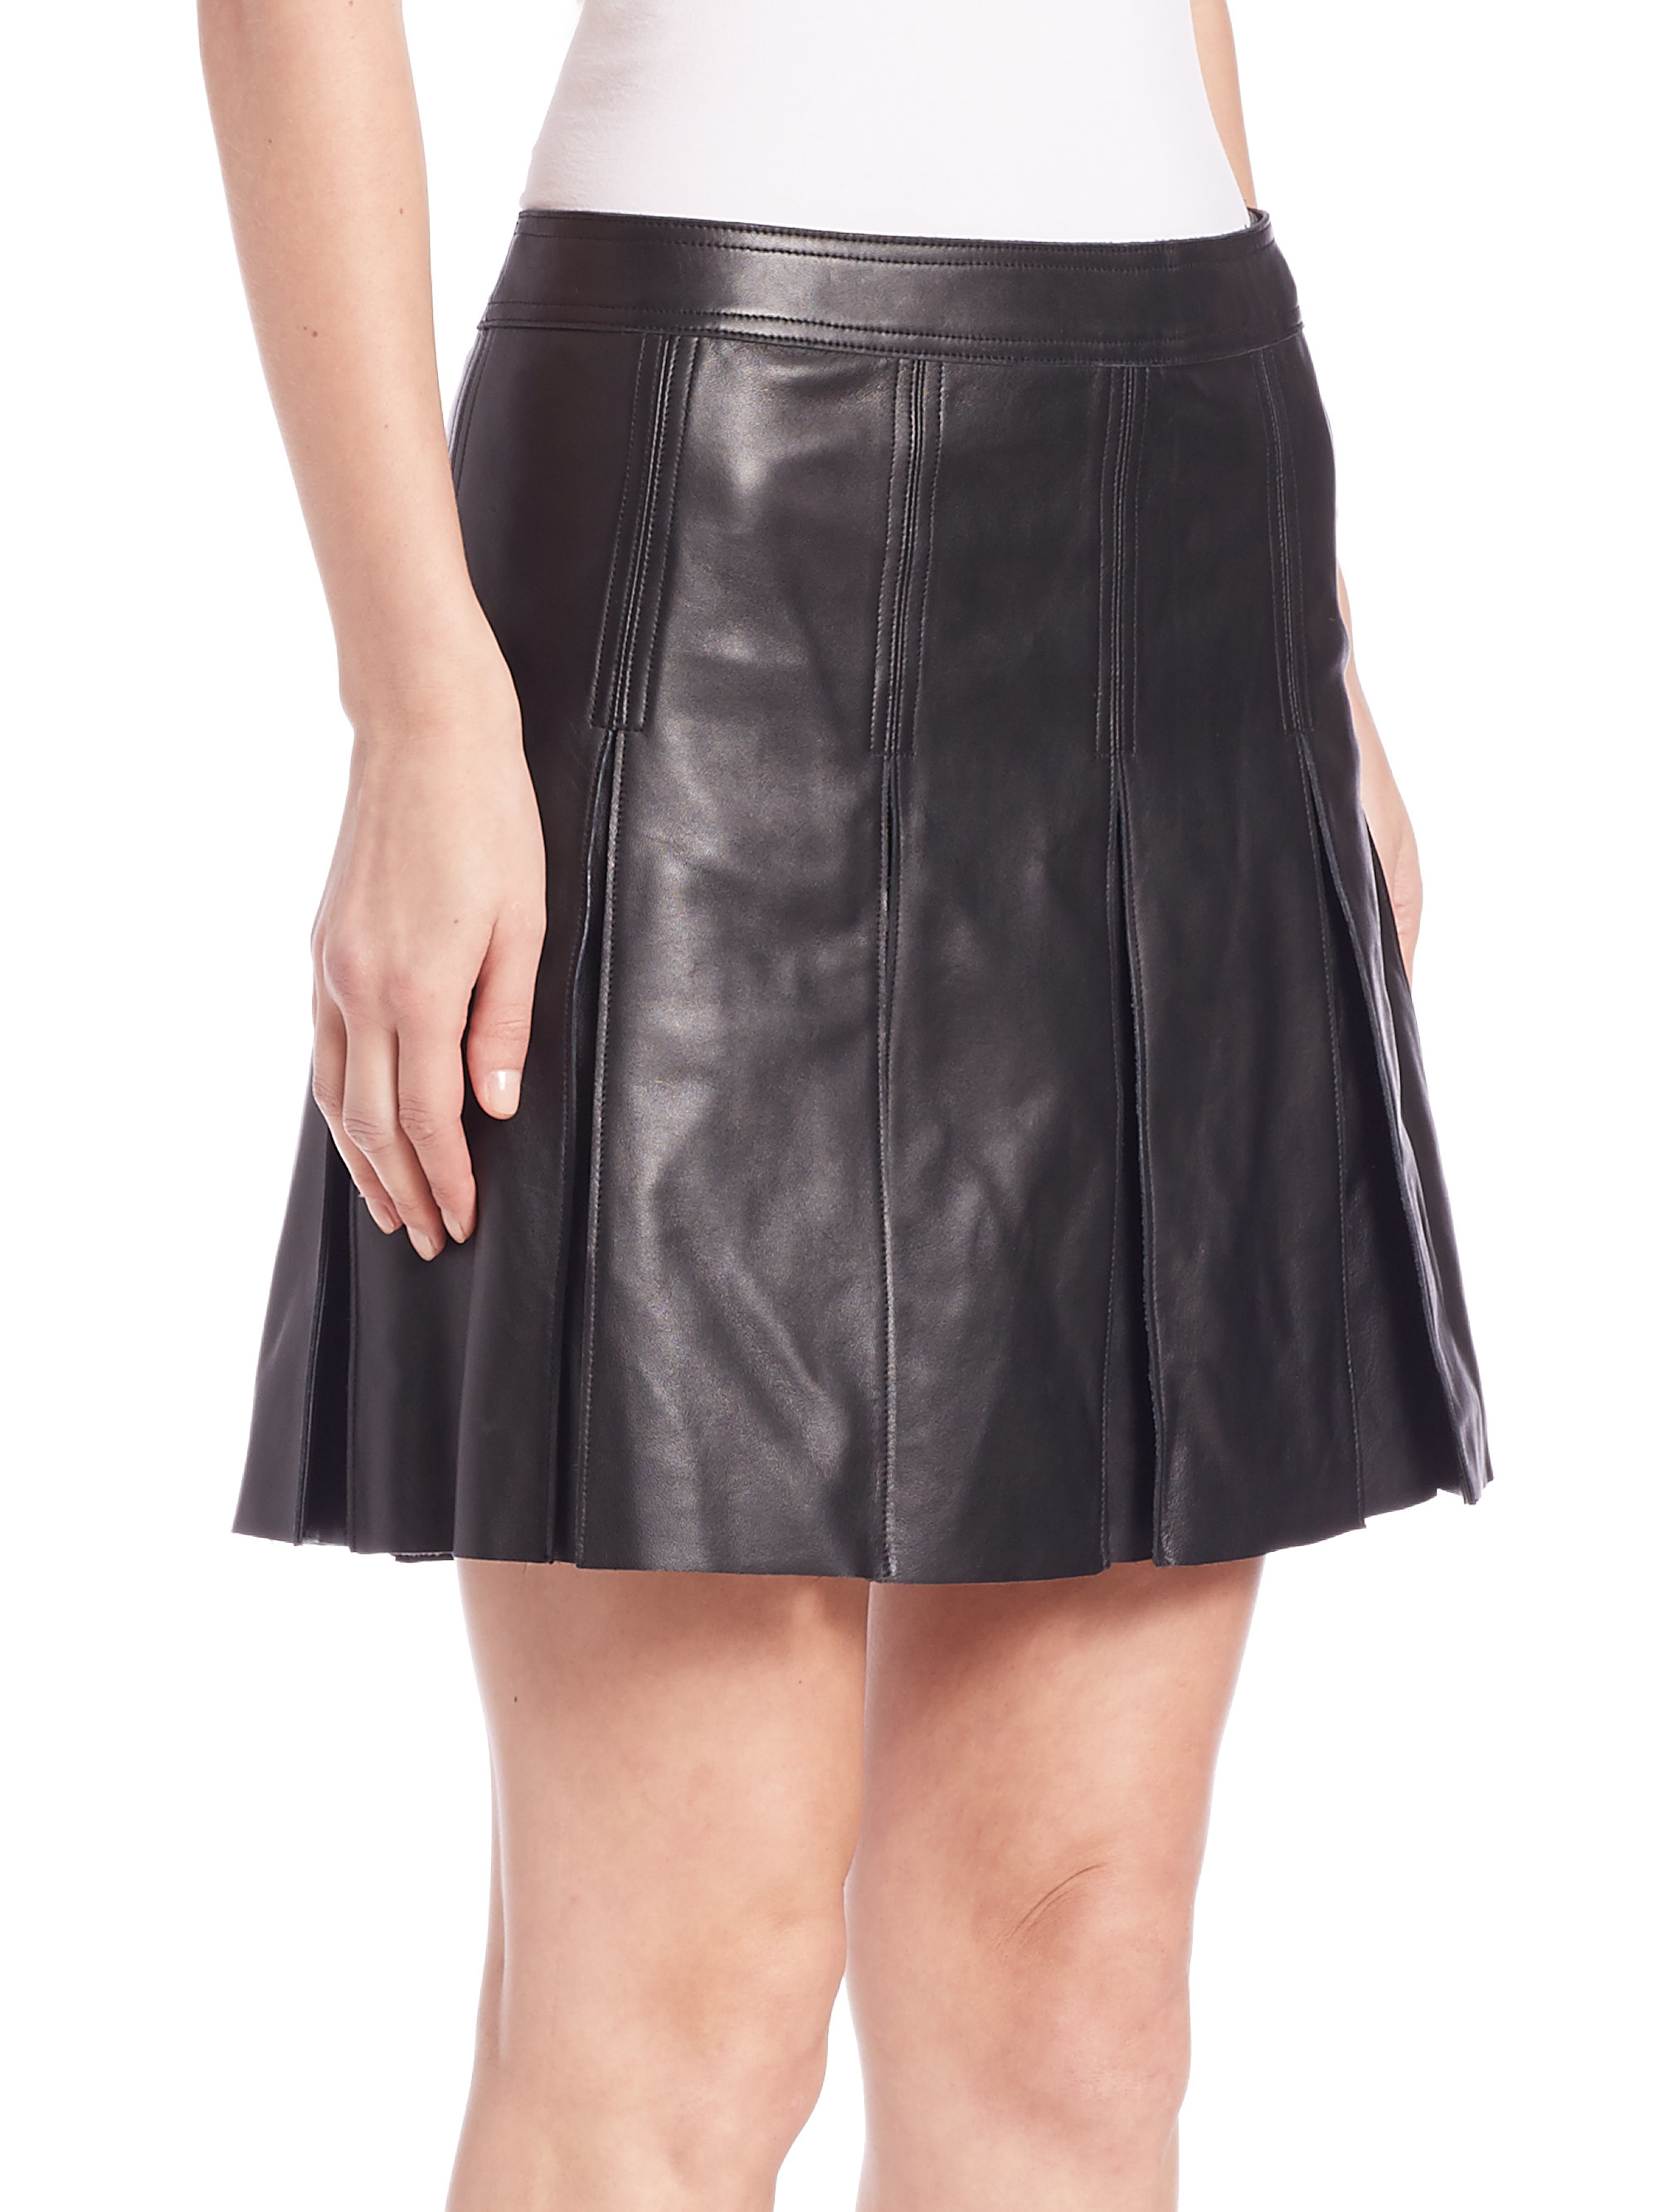 835ba63847 Polo Ralph Lauren Leather Pleated Skirt in Black - Lyst